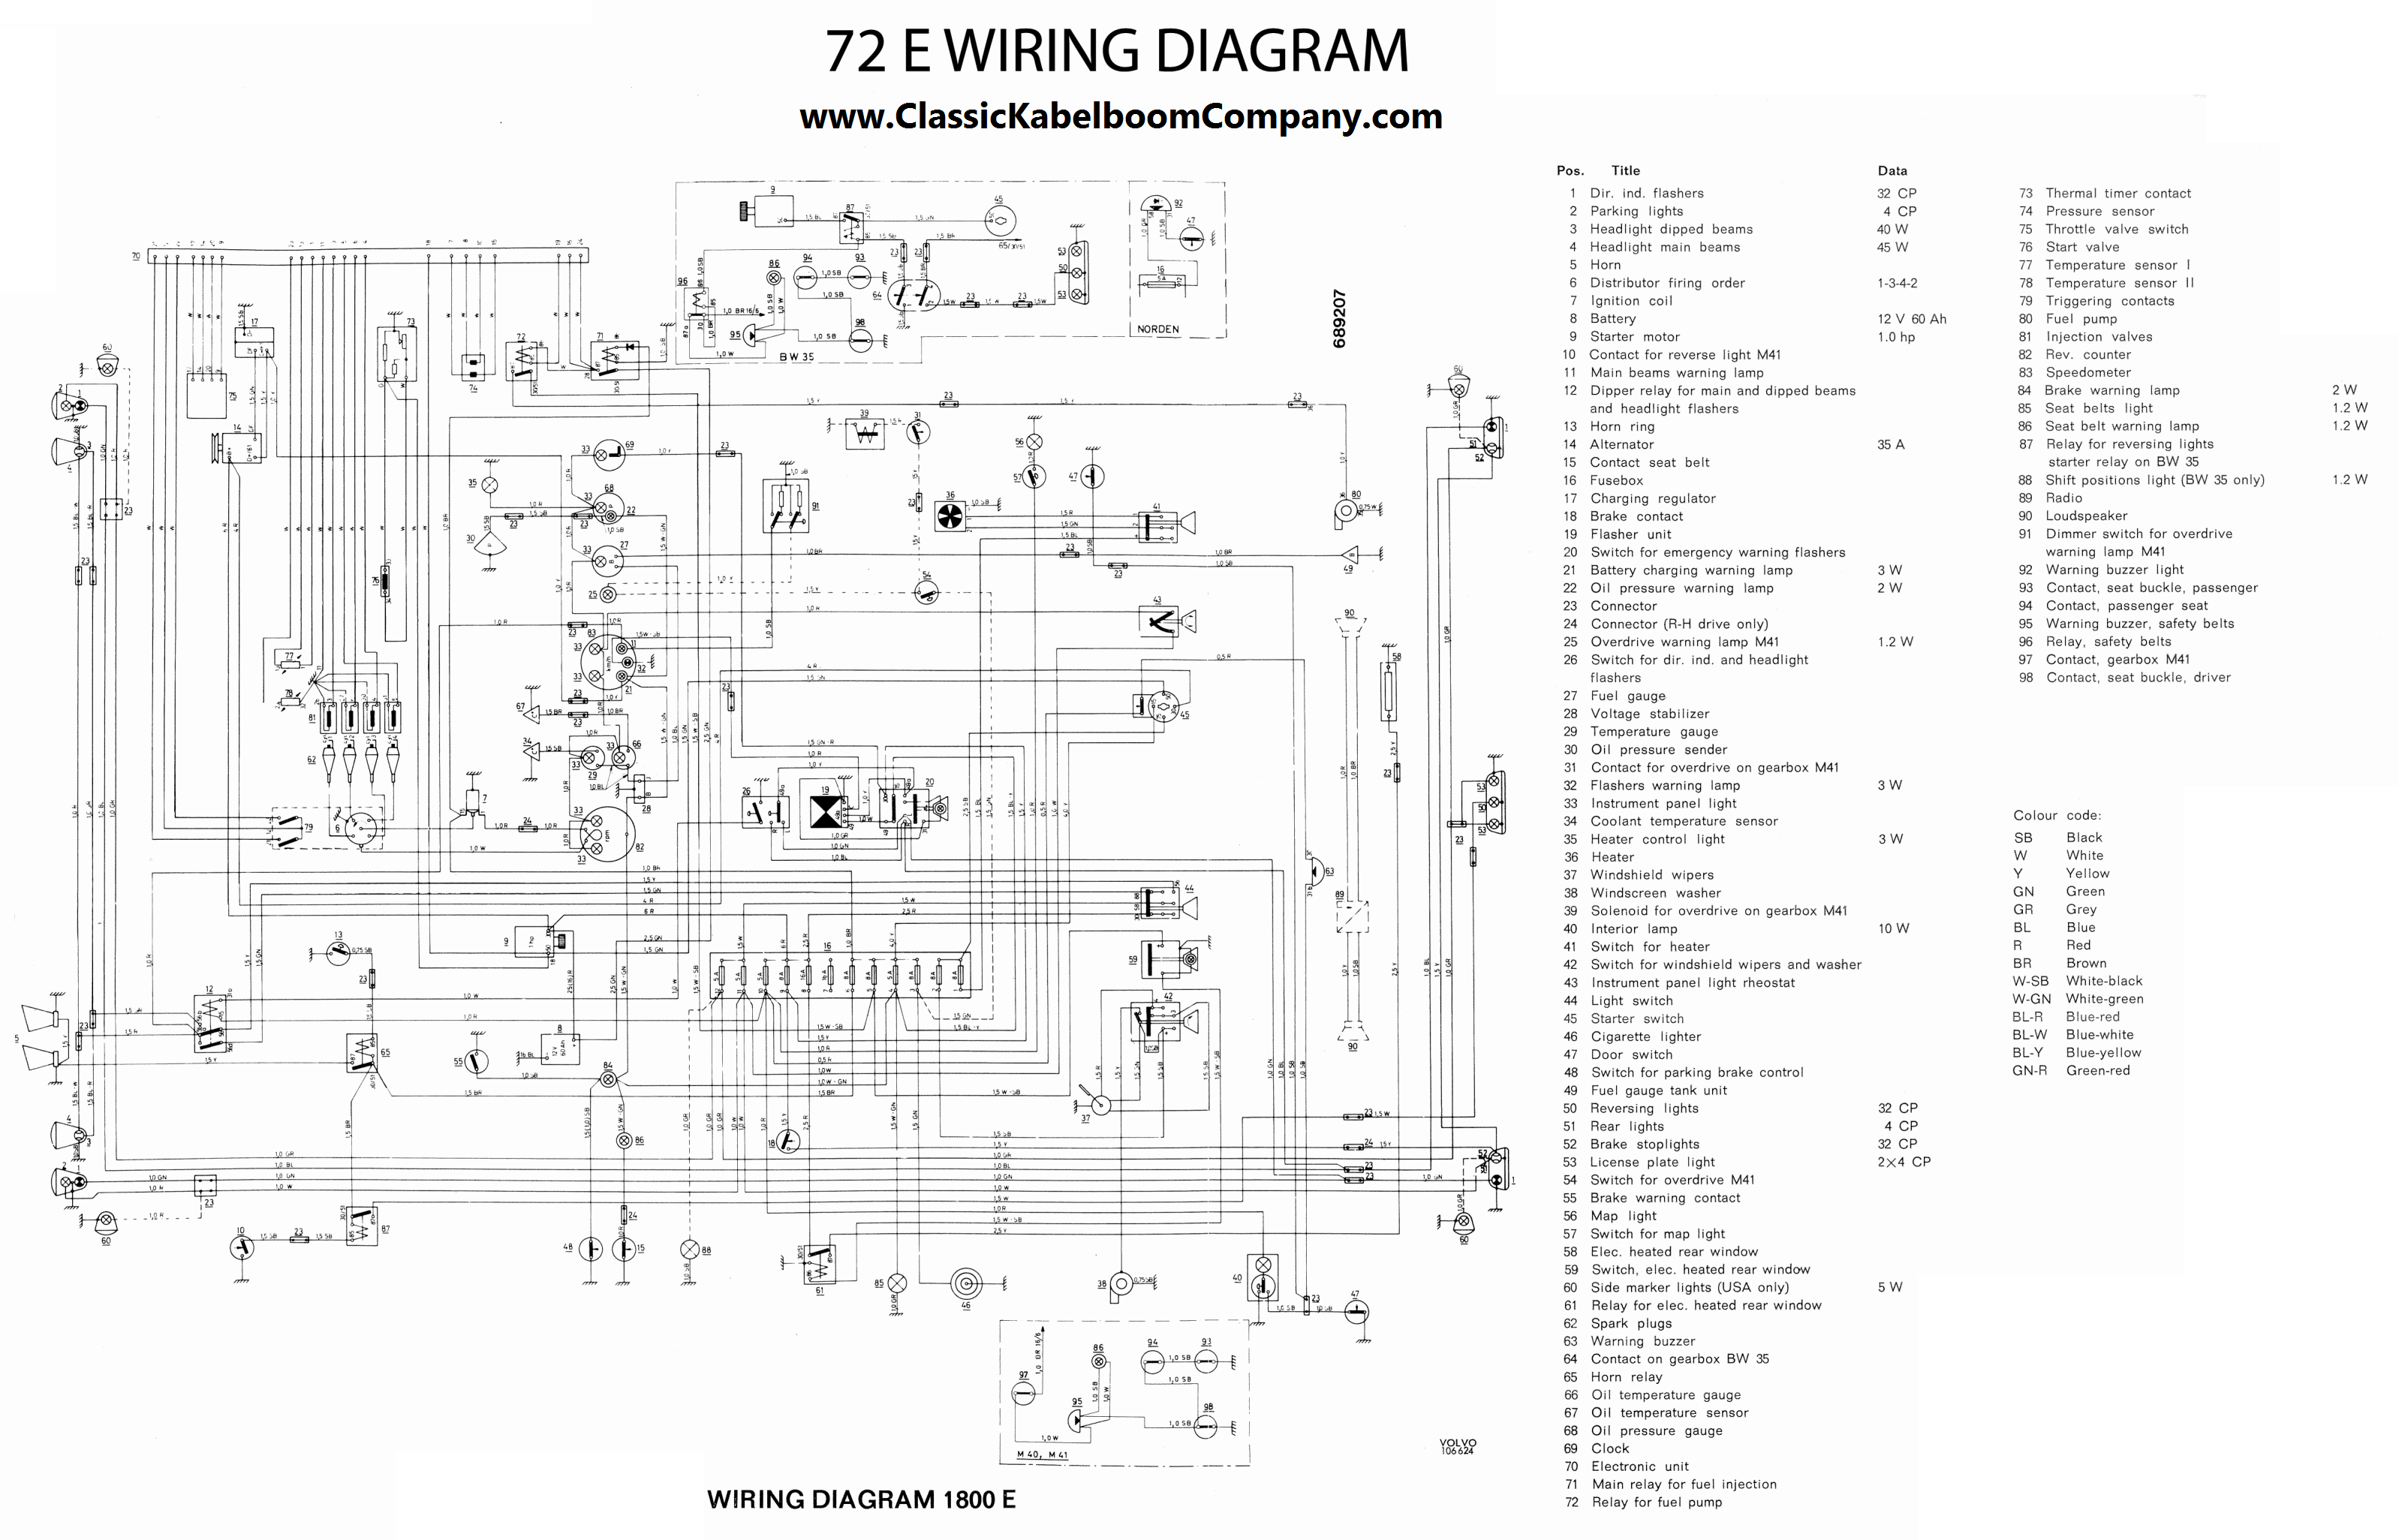 volvo towbar wiring diagram with 1972 Volvo P1800 Wiring Diagram on Abs Trailer Plug Wiring Diagram additionally Audi A3 Fog Light Wiring Diagram besides Diagram For 1999 Volvo V70 Engine likewise Volvo Wiring Diagram V70 together with 1972 Volvo P1800 Wiring Diagram.